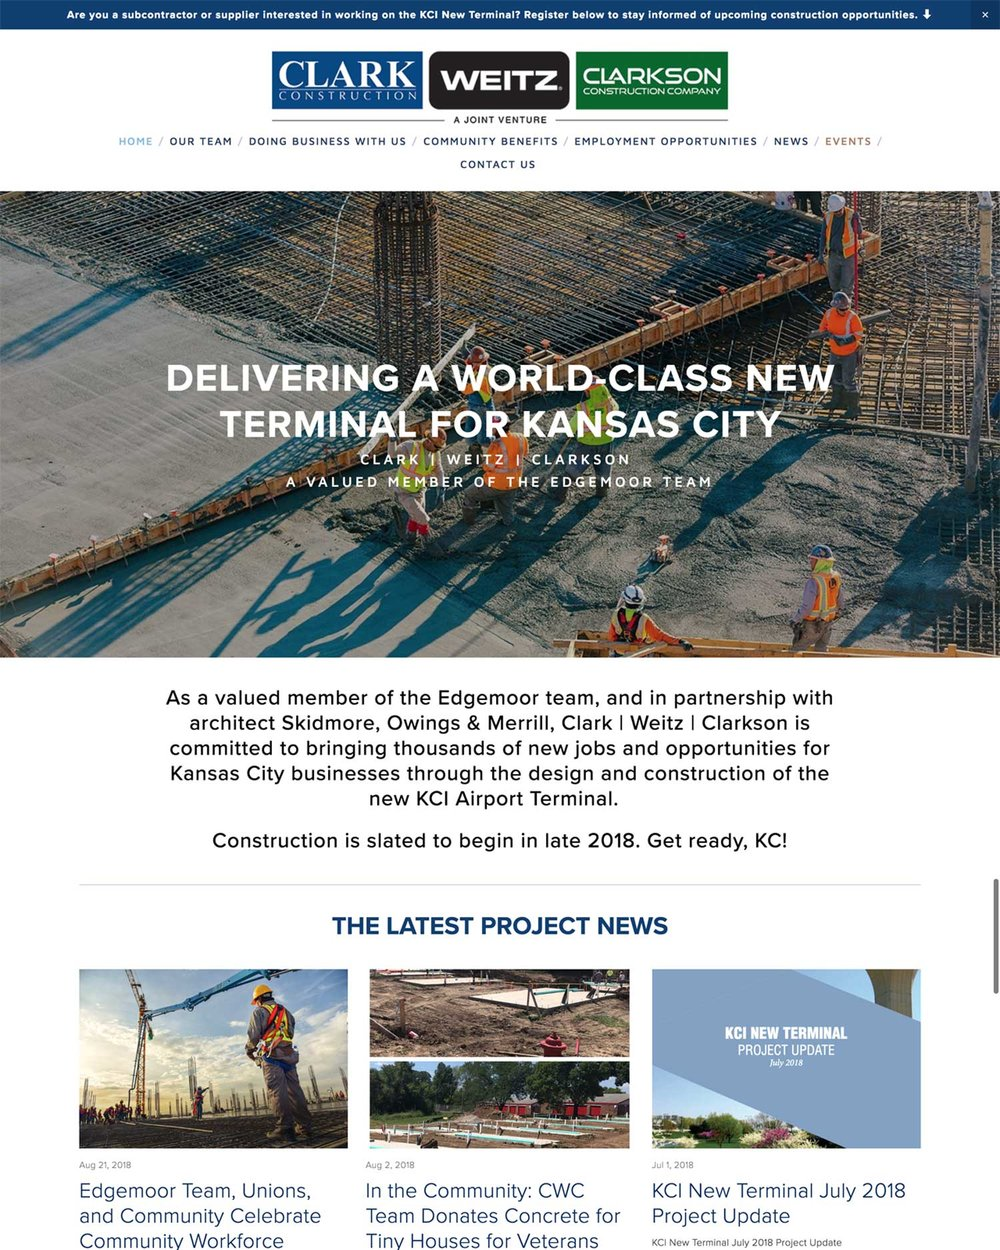 Clark Construction Group - Kansas City International Airport Terminal Construction Project